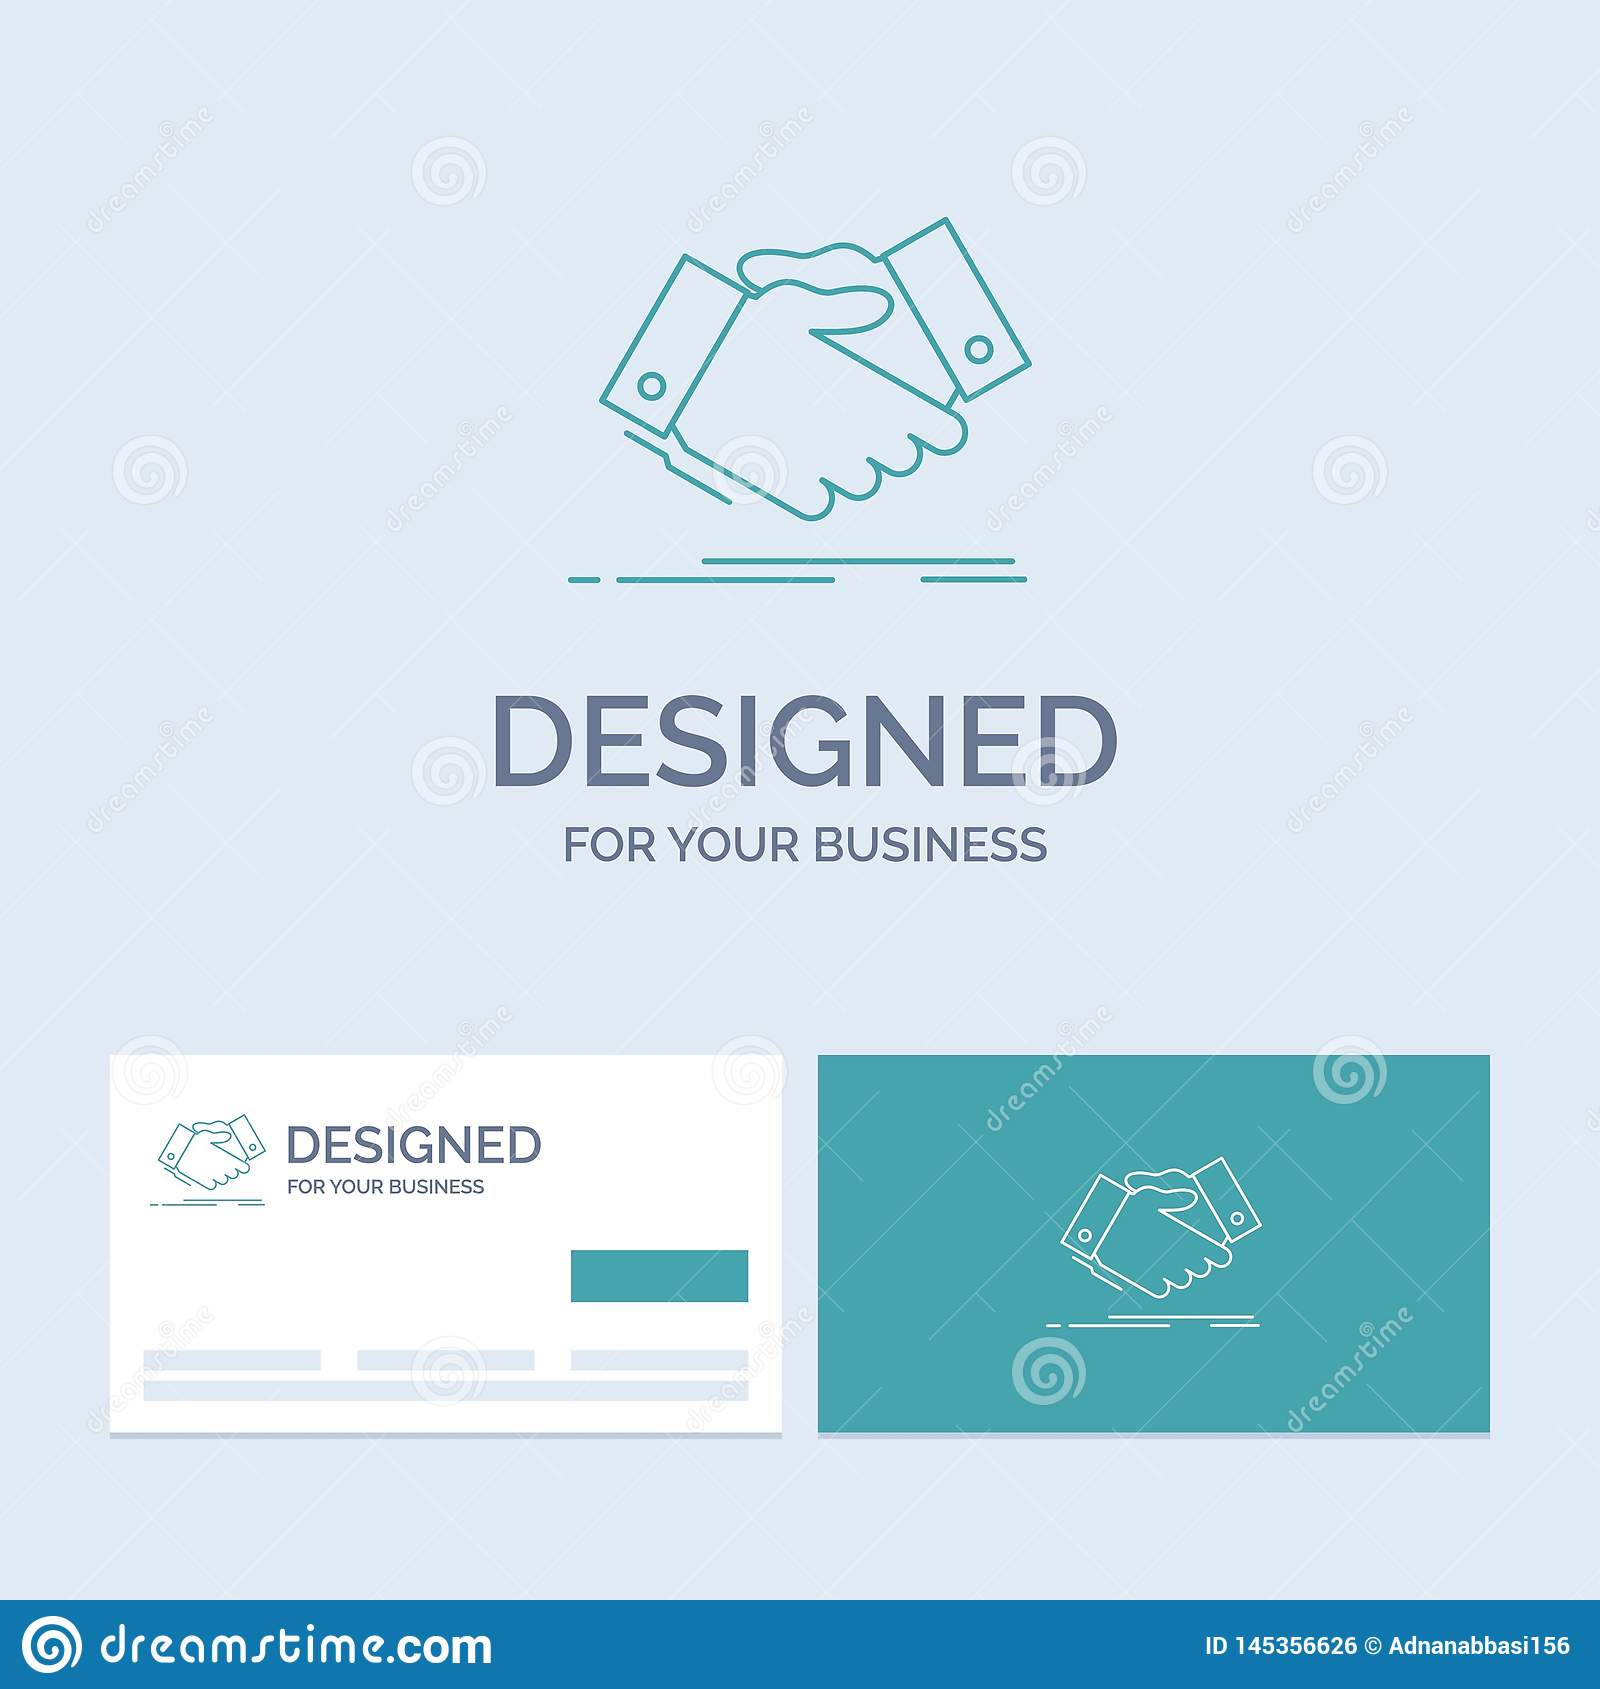 handshake, hand shake, shaking hand, Agreement, business Business Logo Line Icon Symbol for your business. Turquoise Business